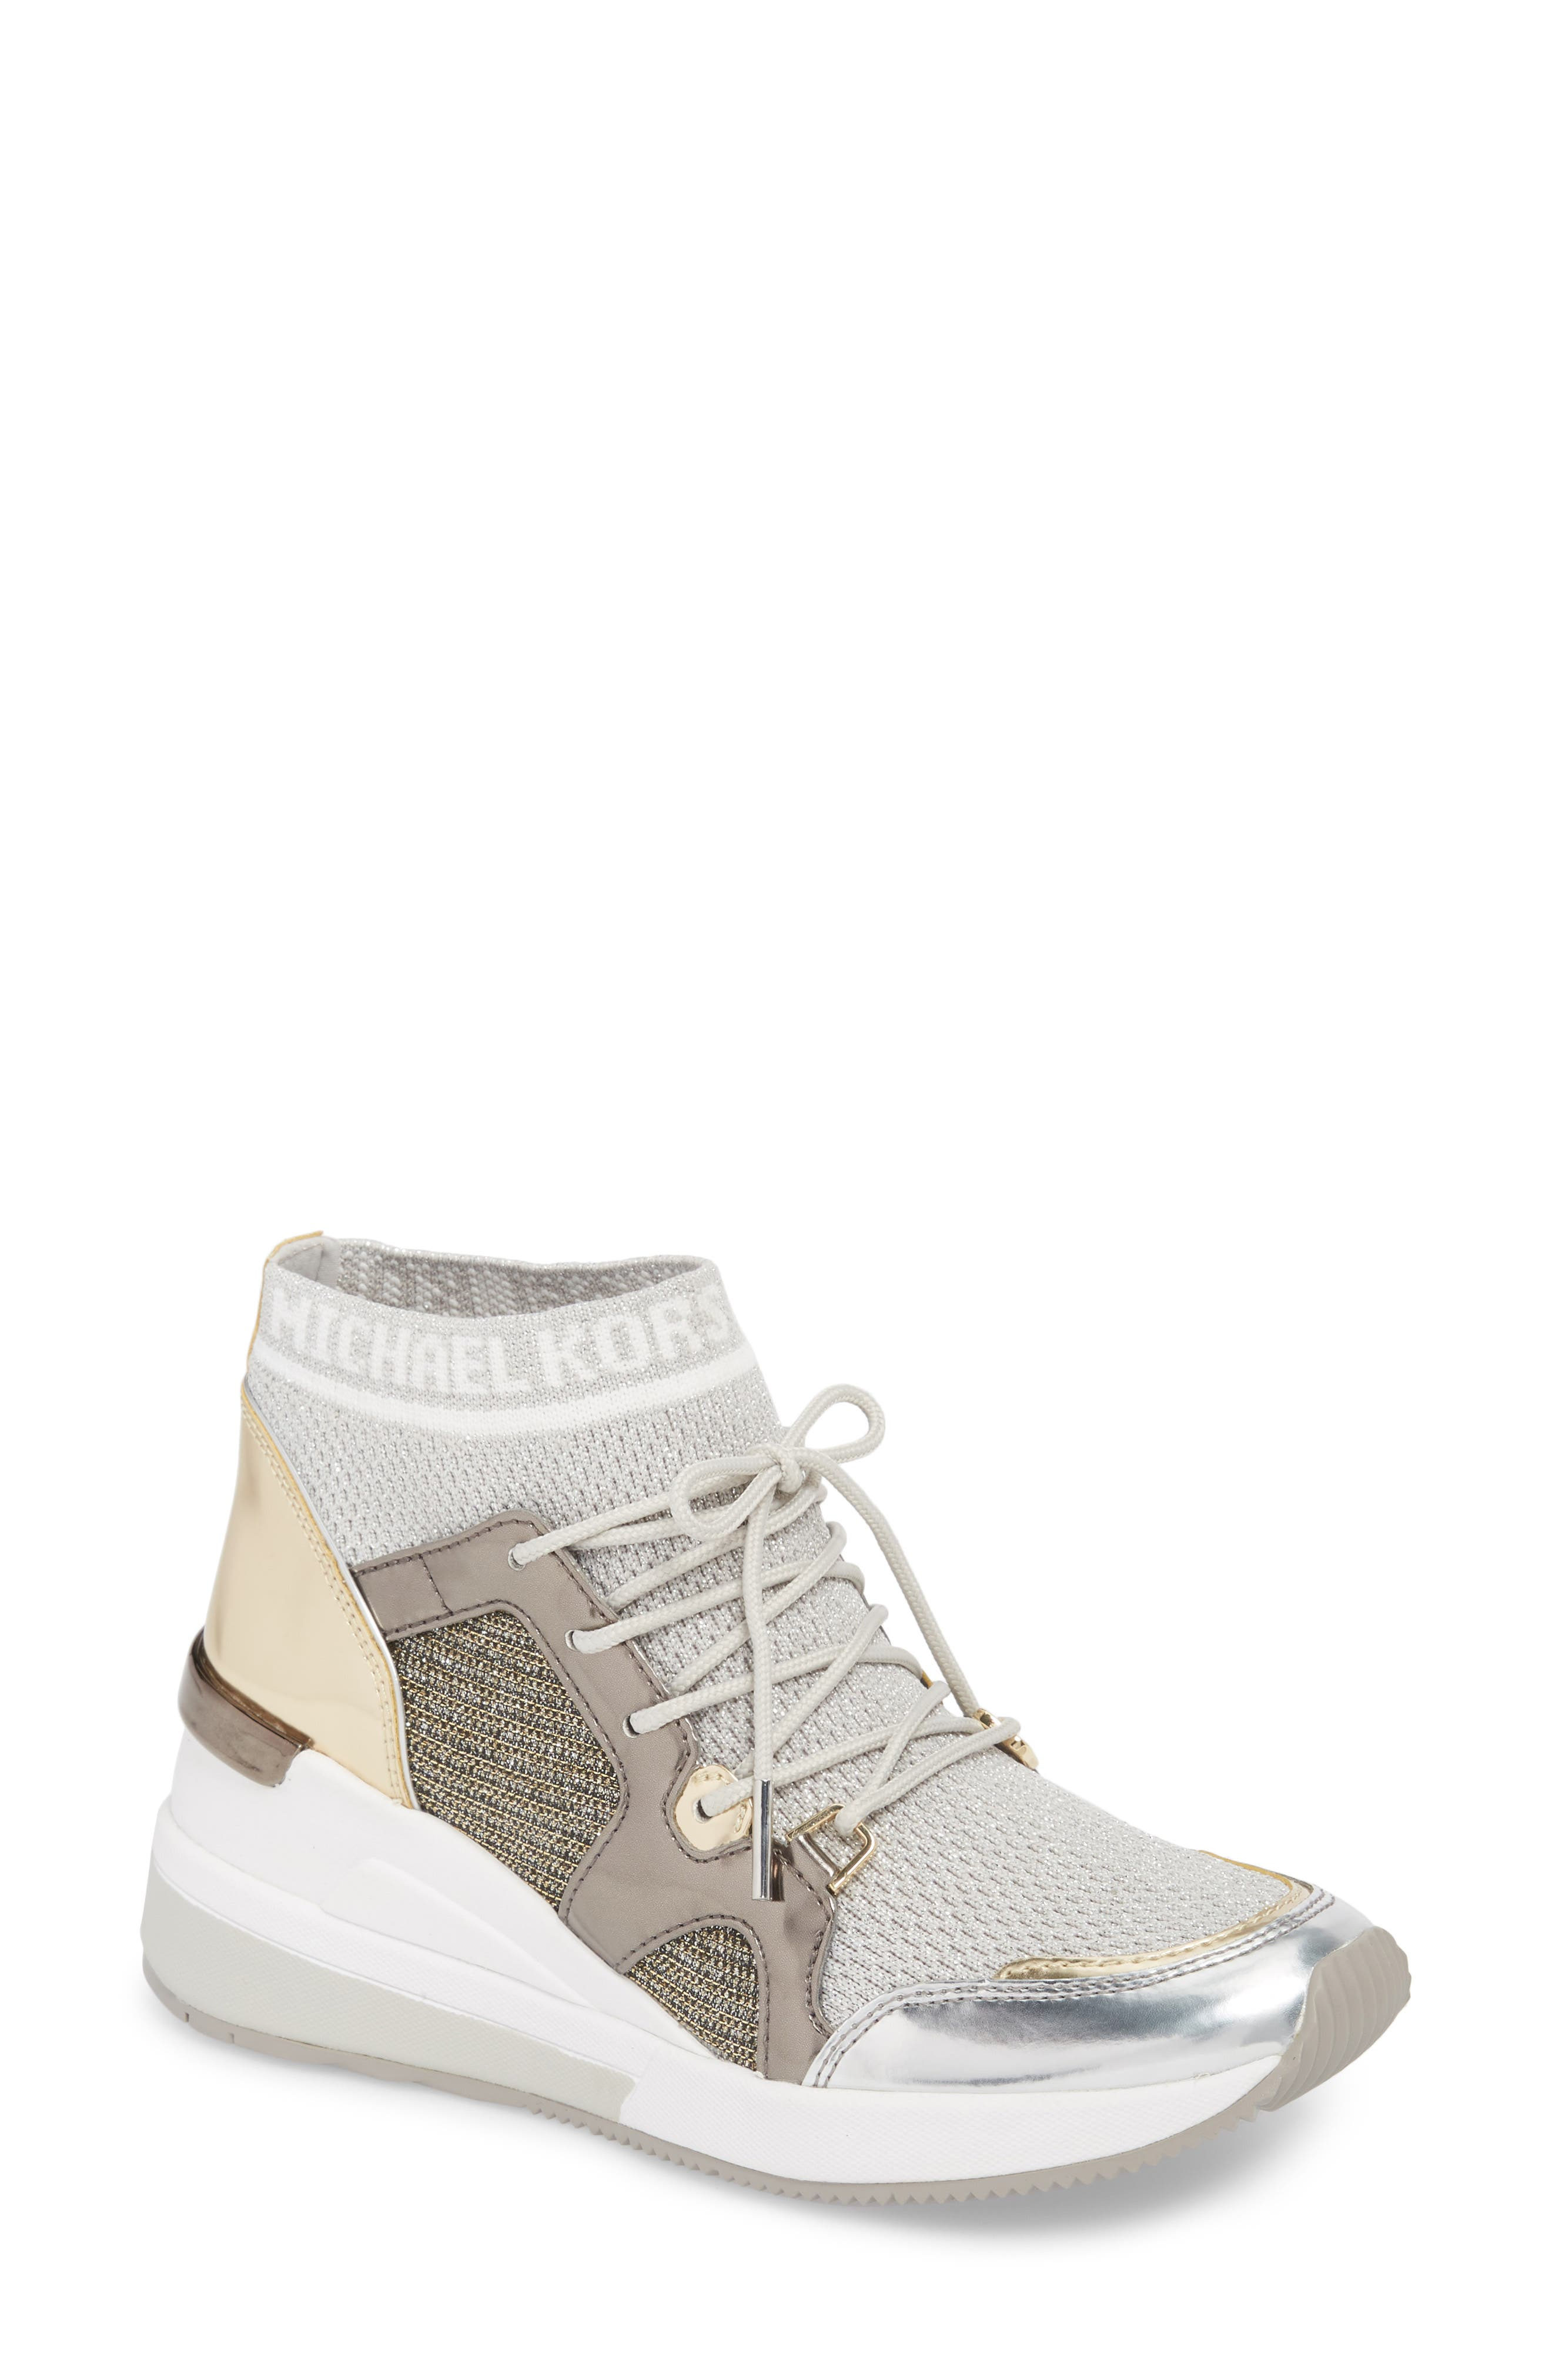 Hilda Wedge Sneaker,                             Main thumbnail 1, color,                             Silver Knit Fabric